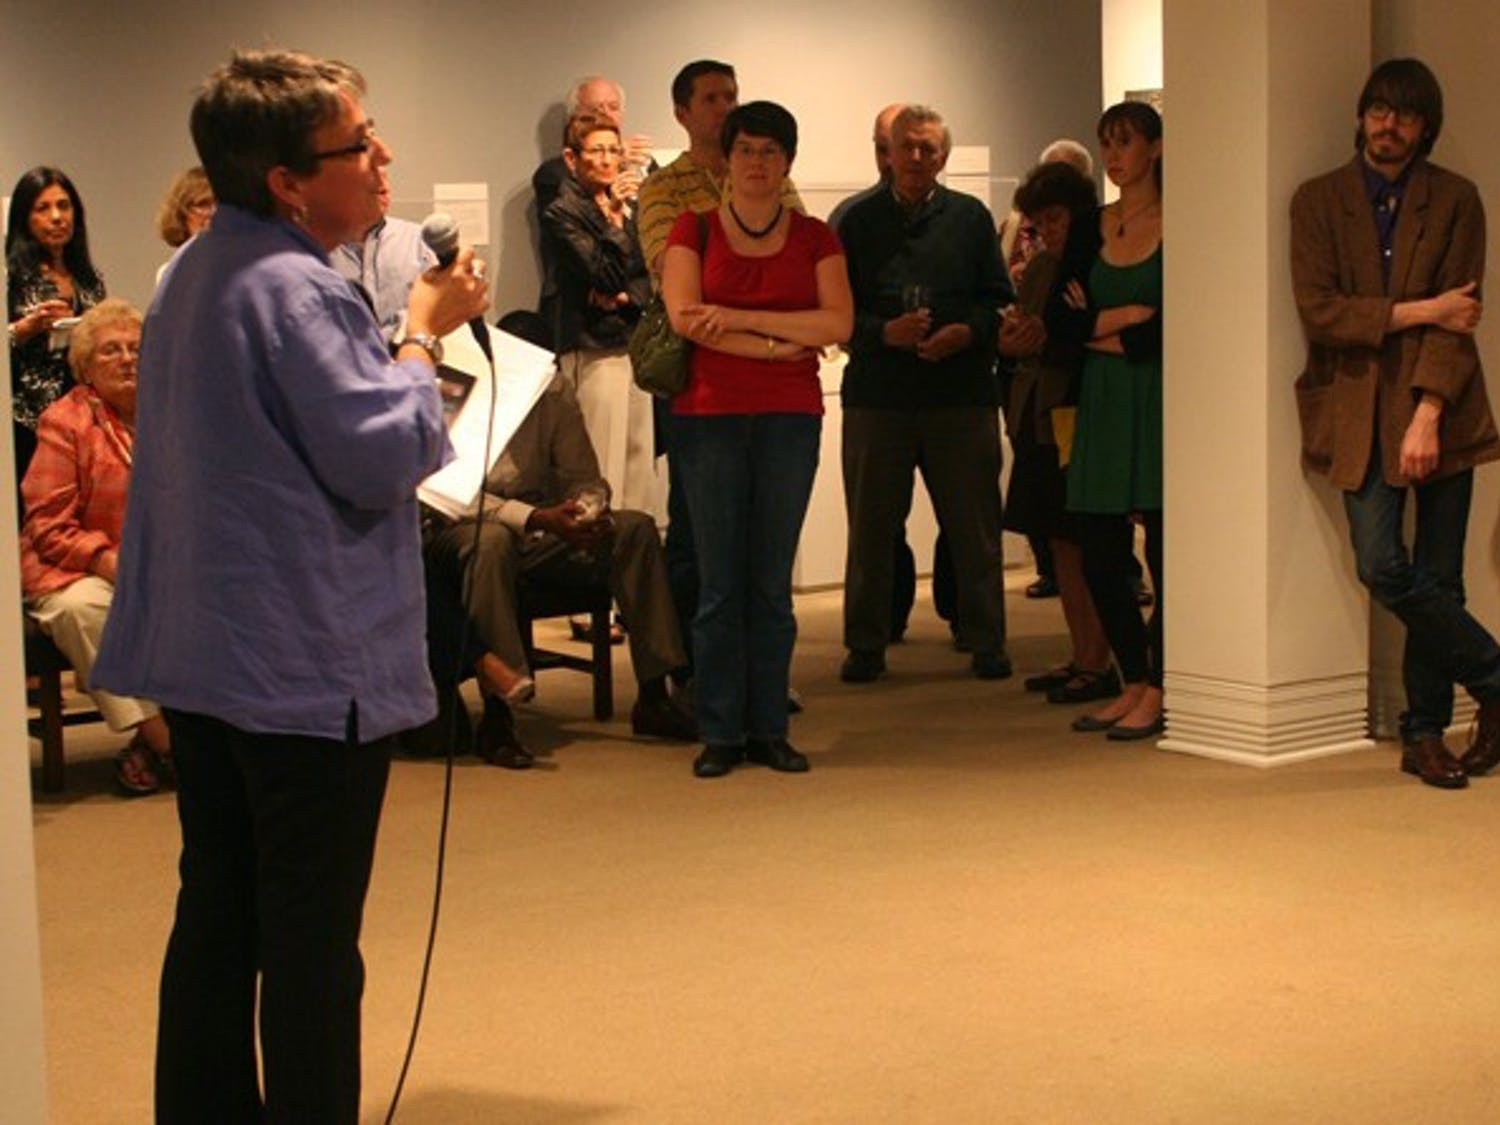 Amanda Hughes, director of external affairs, welcomes the crowd Friday at the Ackland Art Museum to the exhibition featuring Andy Warhol Polaroids.